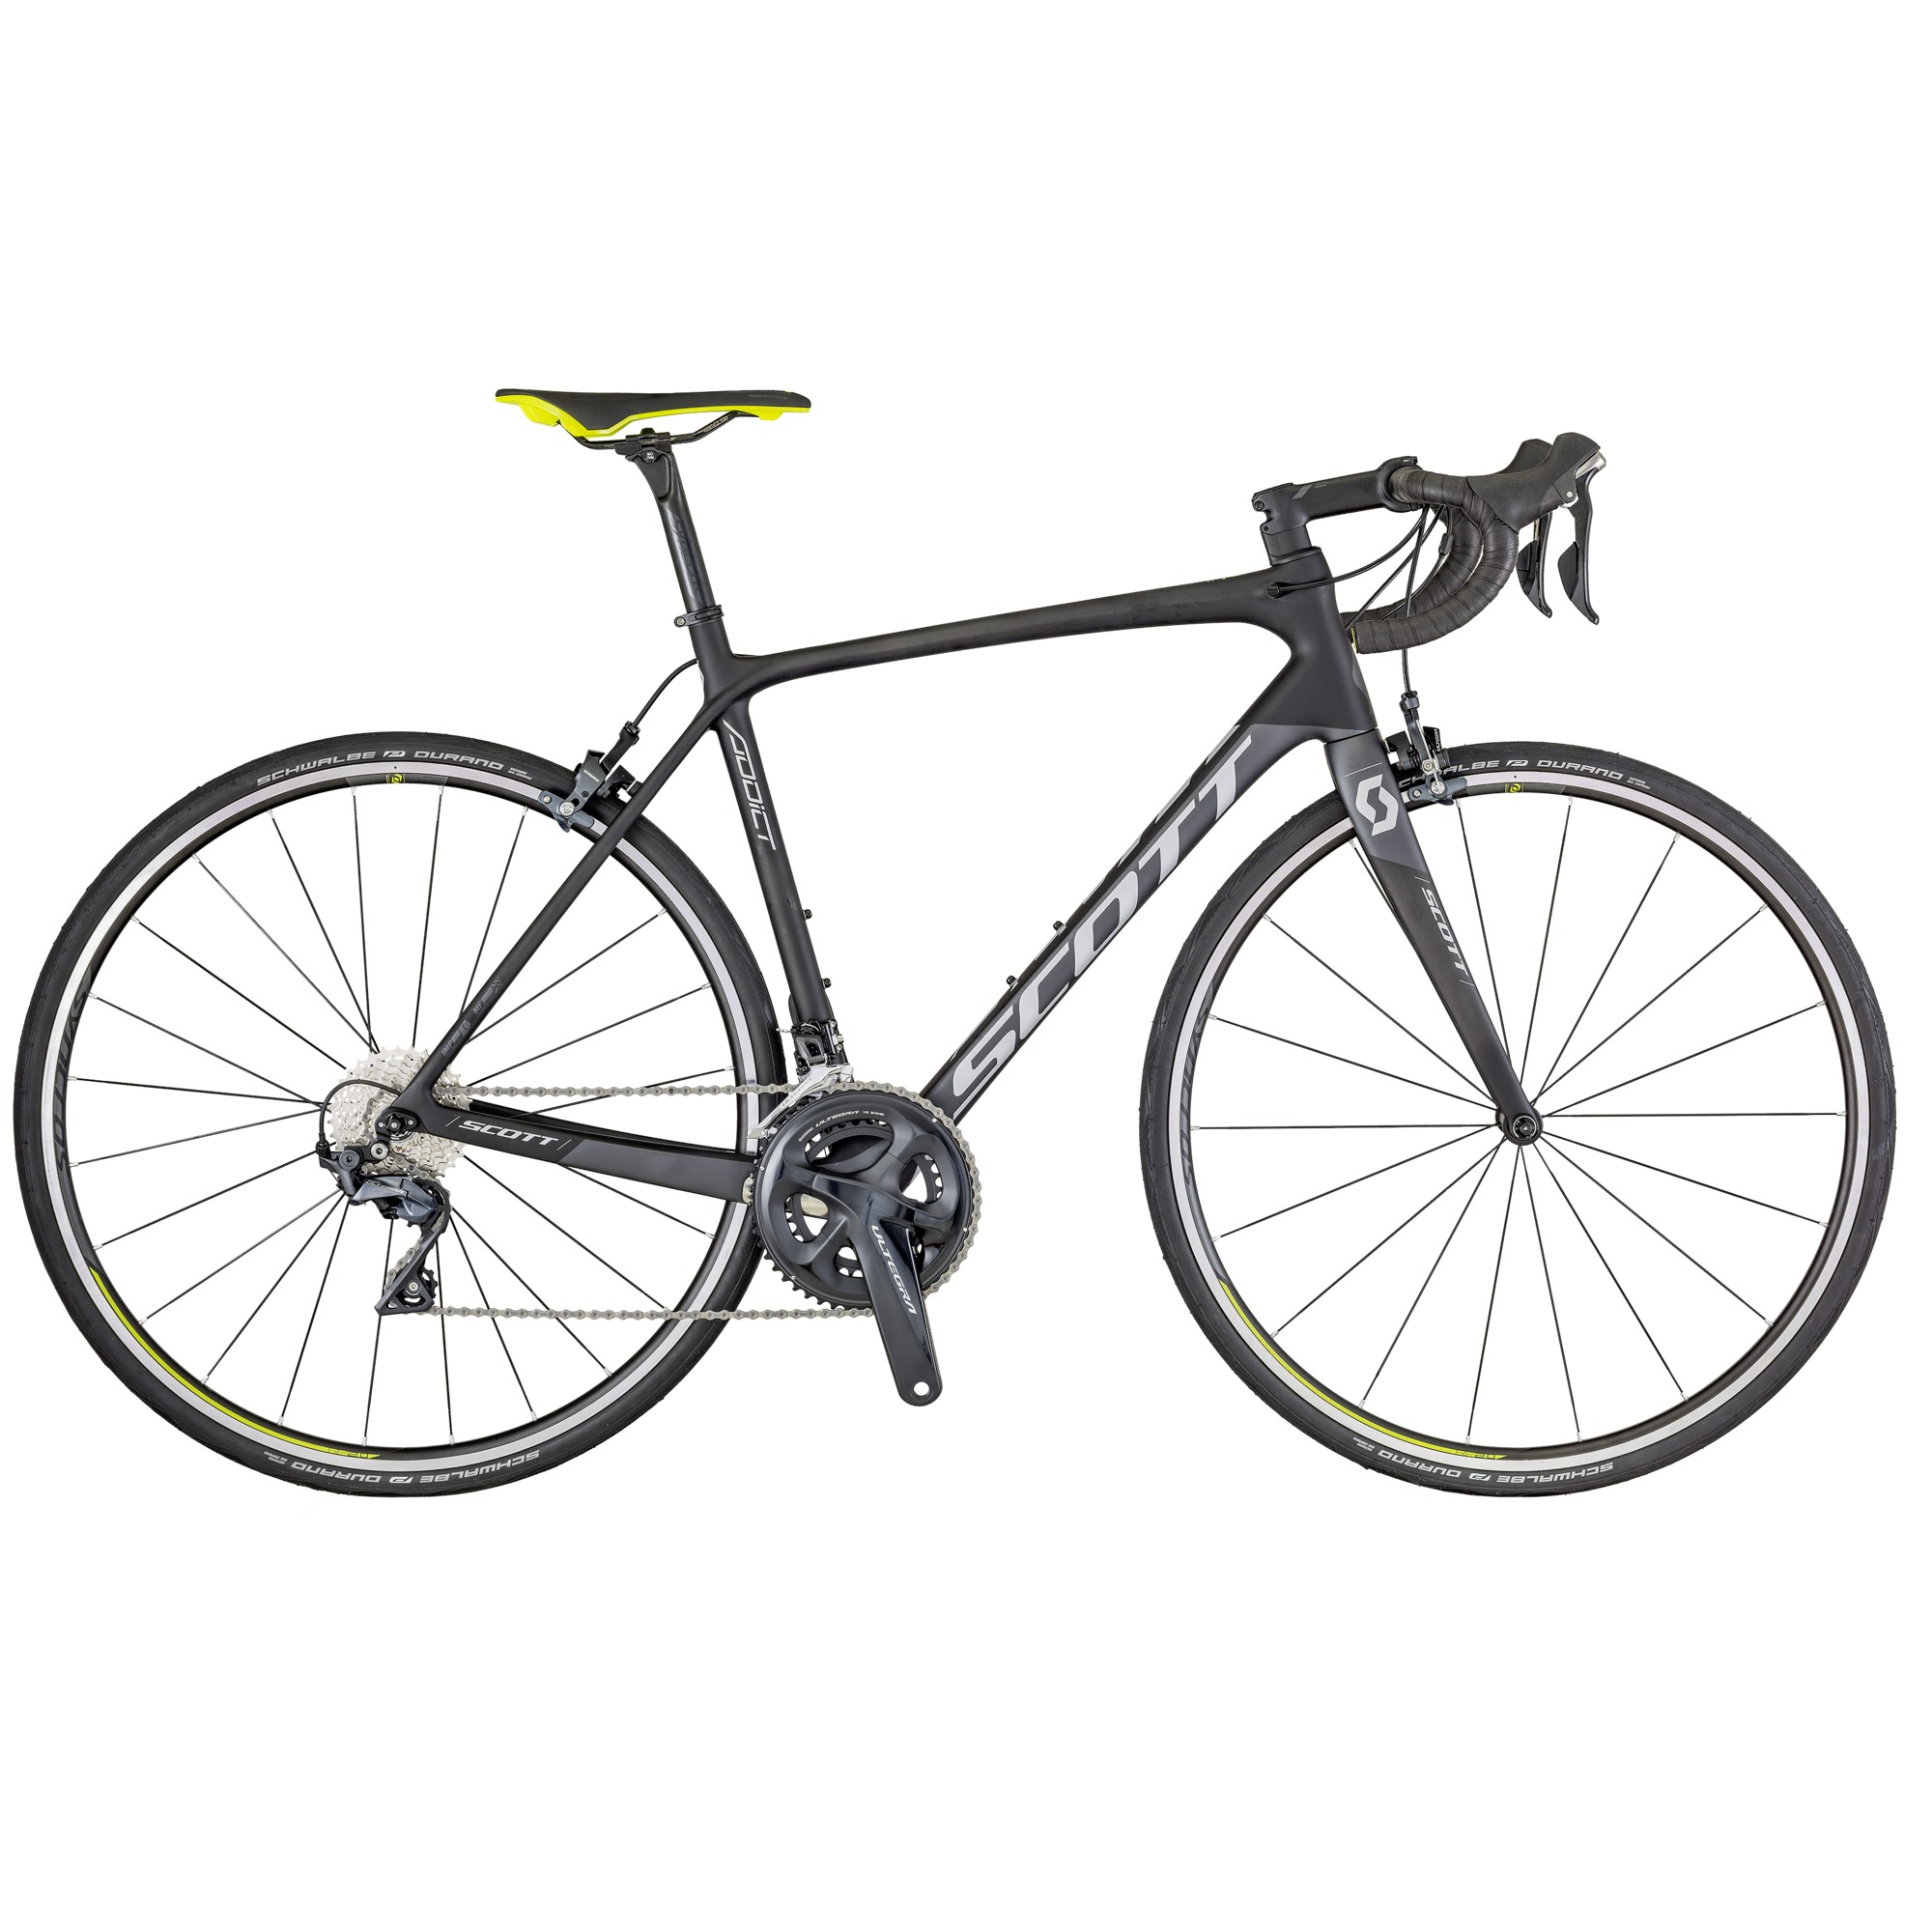 SCOTT Addict 10 Bike L56 - Zweirad Homann